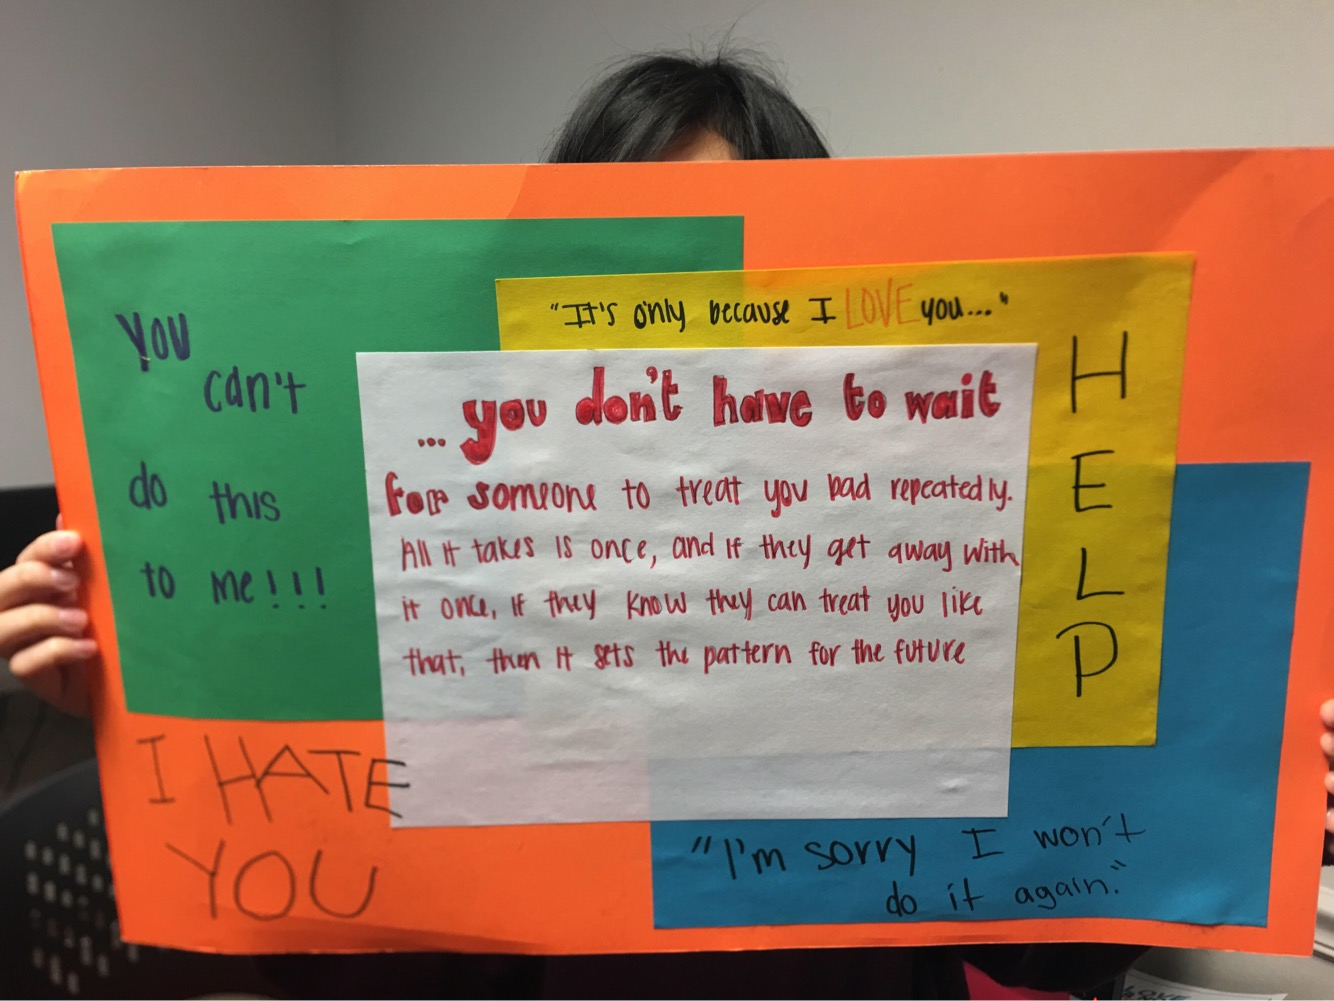 An MSMS student shows the creative poster she made at the seminar.